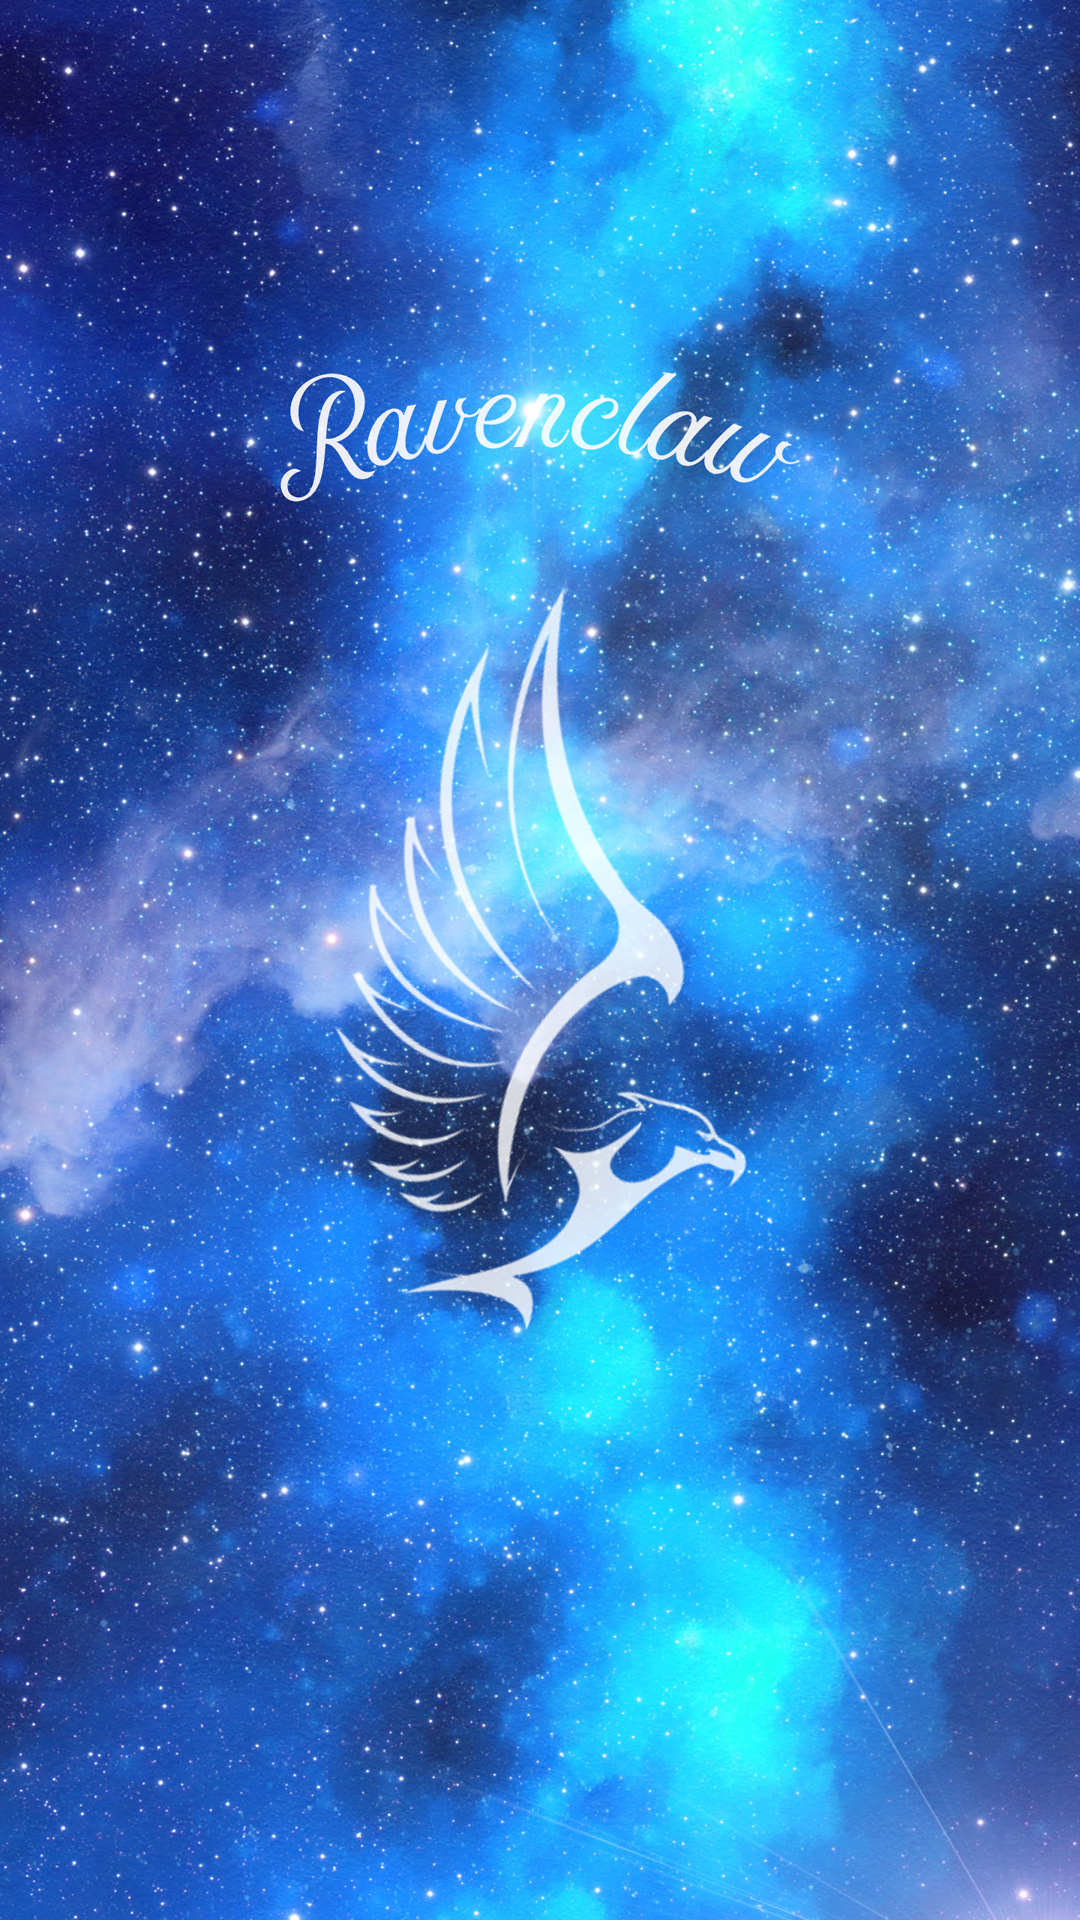 Rhaegar Is An Angel Who Deserves The Stars Harry Potter Phone Wallpapers Cosmos All Are Harry Potter Background Harry Potter Wallpaper Harry Potter Phone